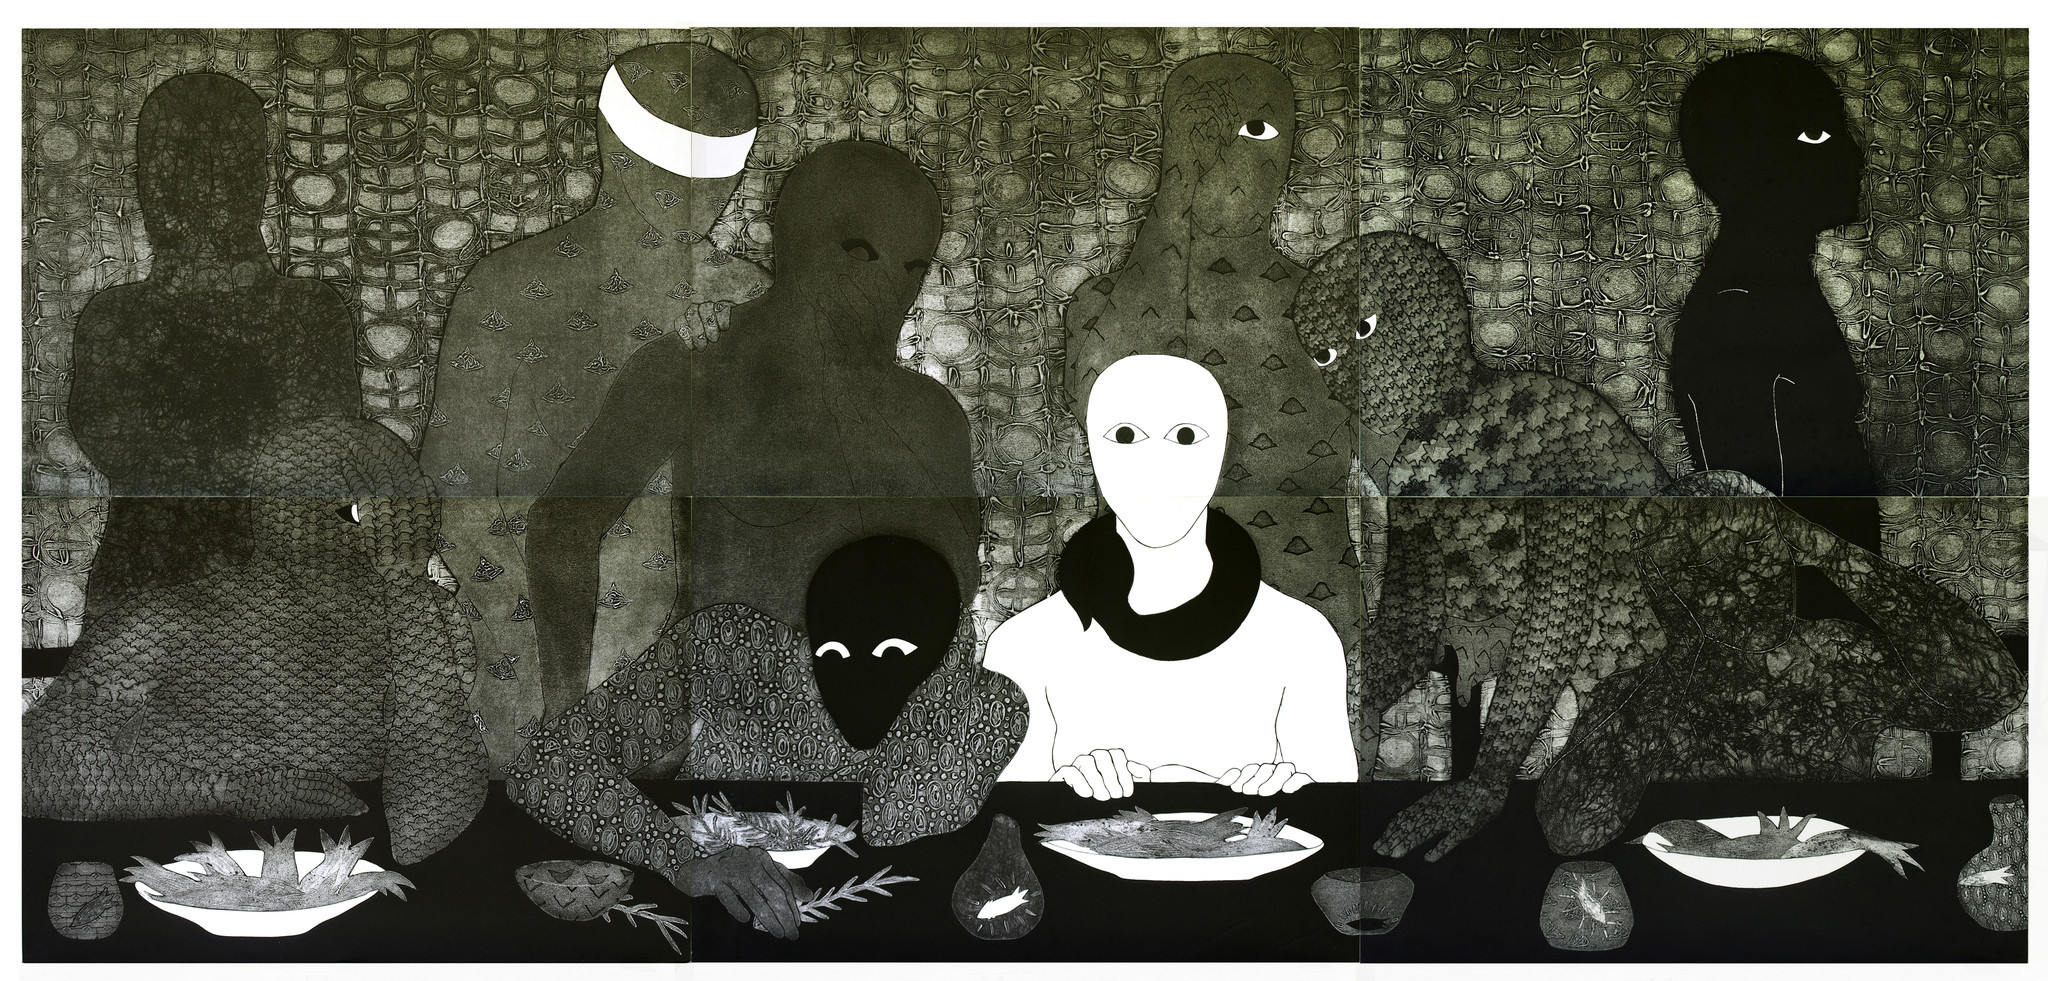 """Belkis Ayn's """"La Cena"""" (""""The Supper""""), 1991, collagraph."""